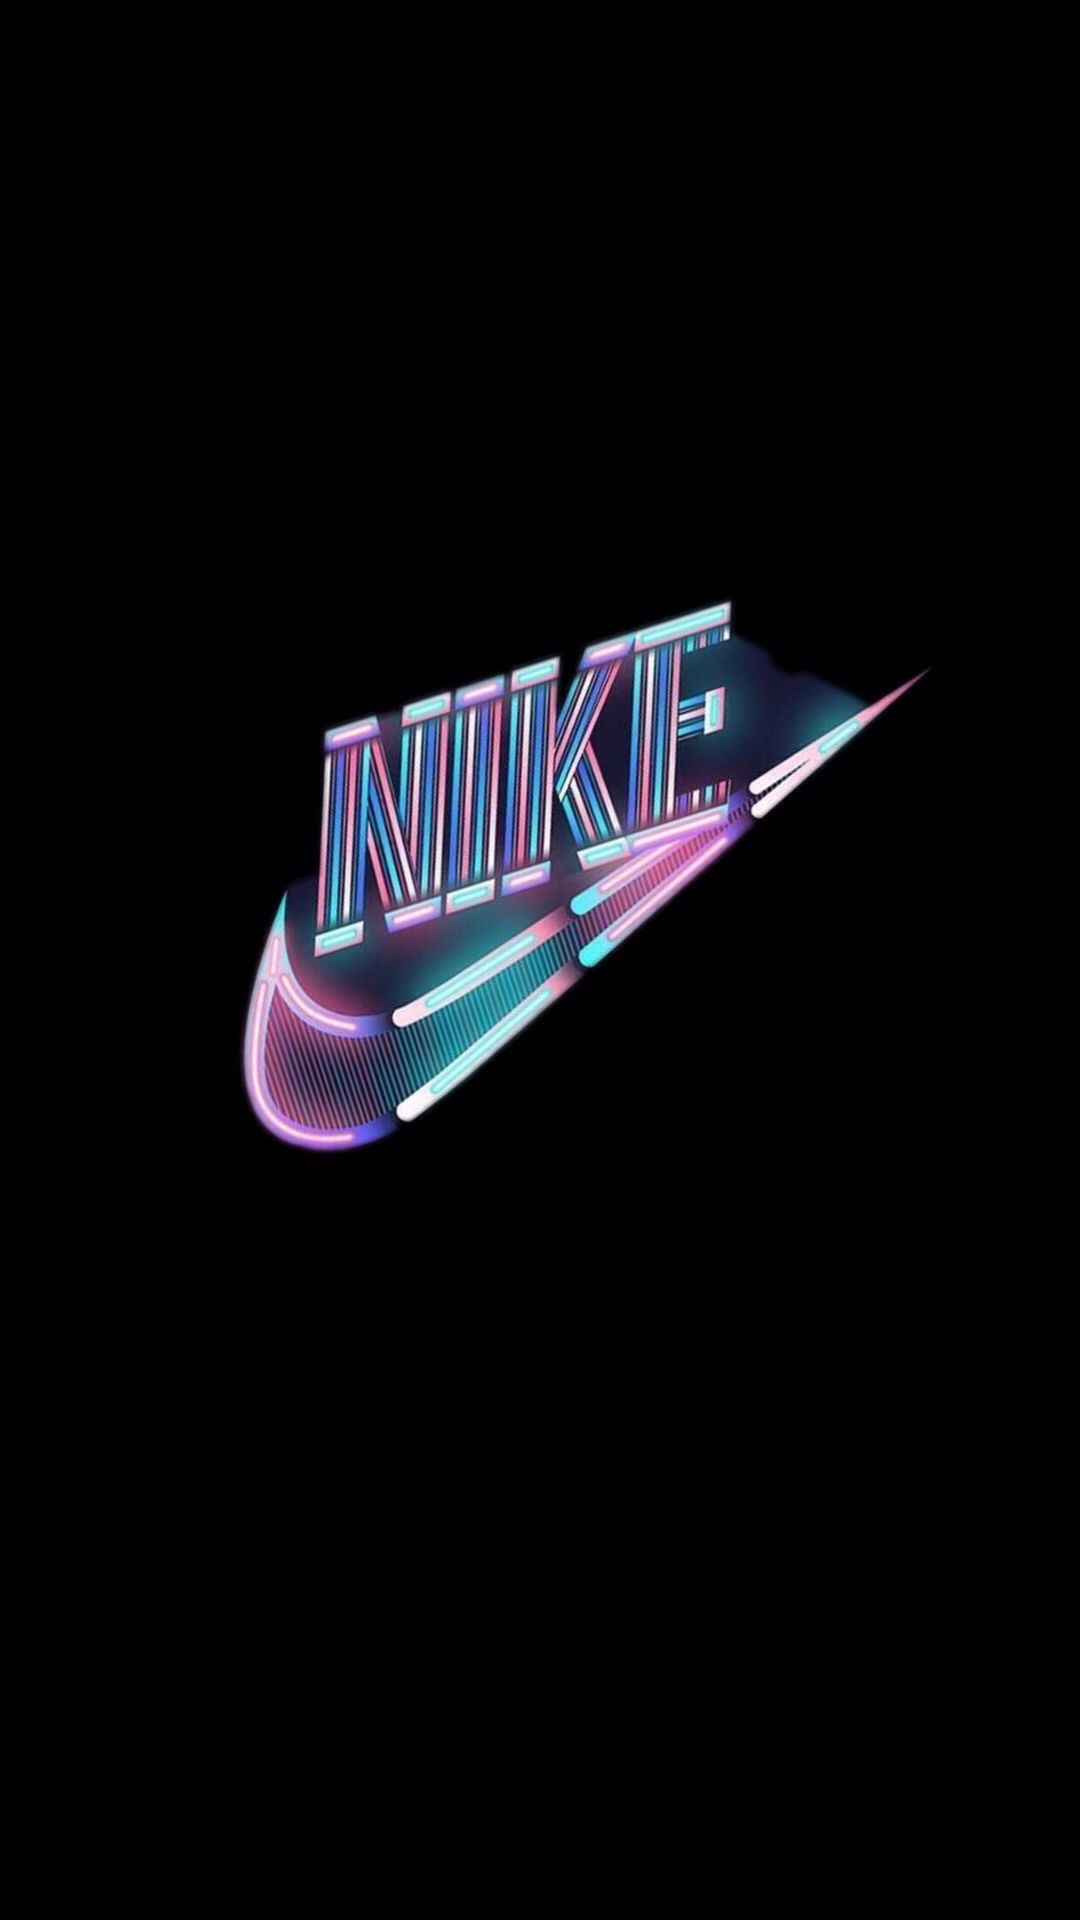 Download New Nike Wallpapers For Iphone Xr Today Brandwallpaper Nikewallpapers In 2020 Nike Wallpaper Nike Logo Wallpapers Nike Art